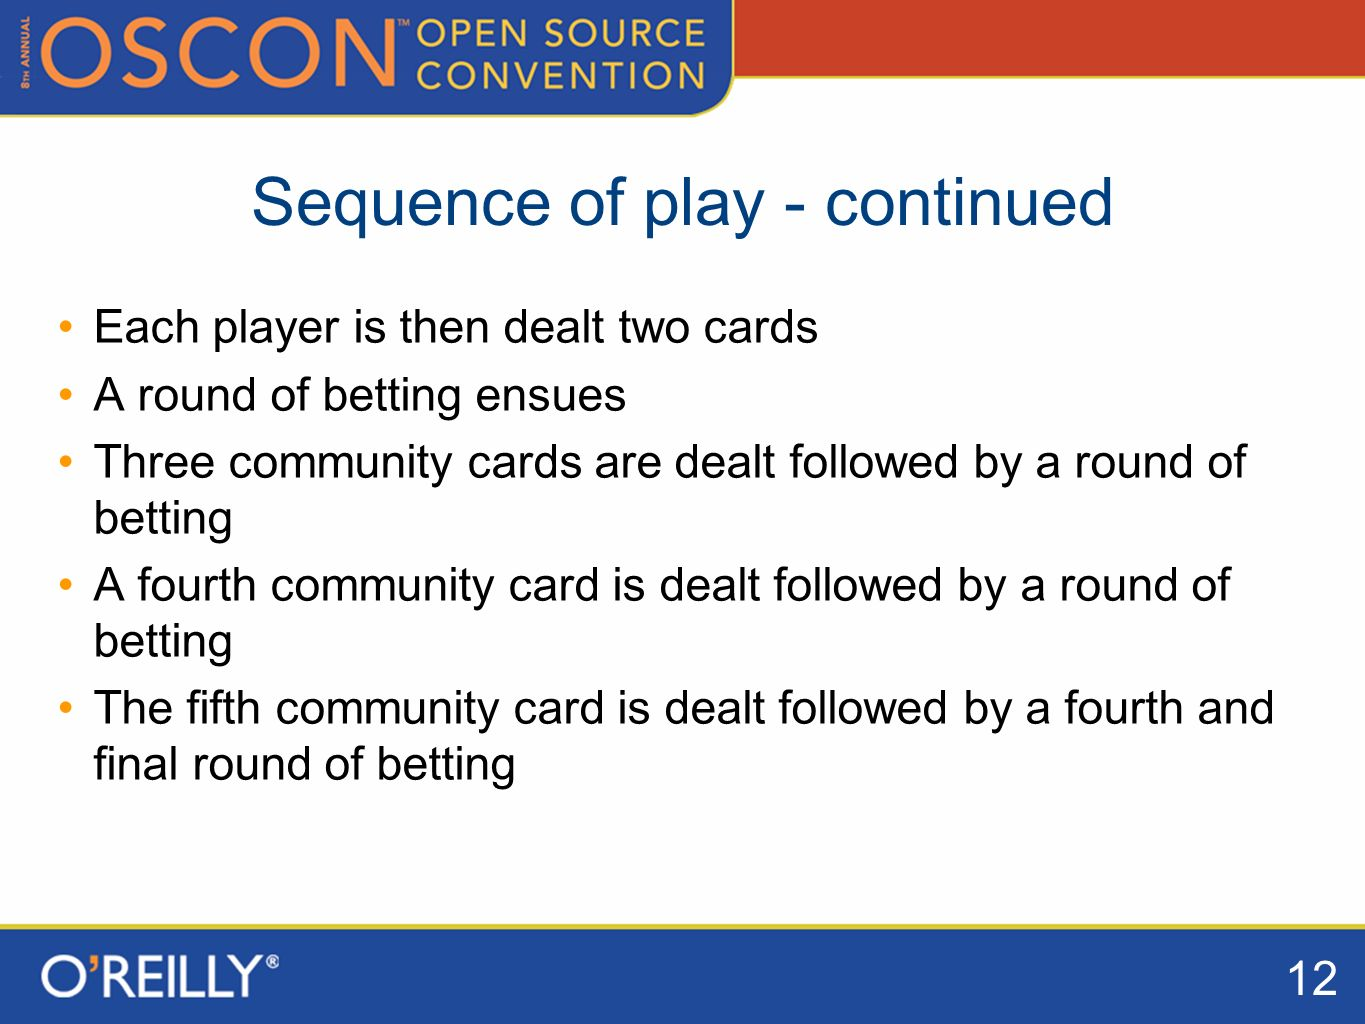 12 Sequence of play - continued Each player is then dealt two cards A round of betting ensues Three community cards are dealt followed by a round of betting A fourth community card is dealt followed by a round of betting The fifth community card is dealt followed by a fourth and final round of betting